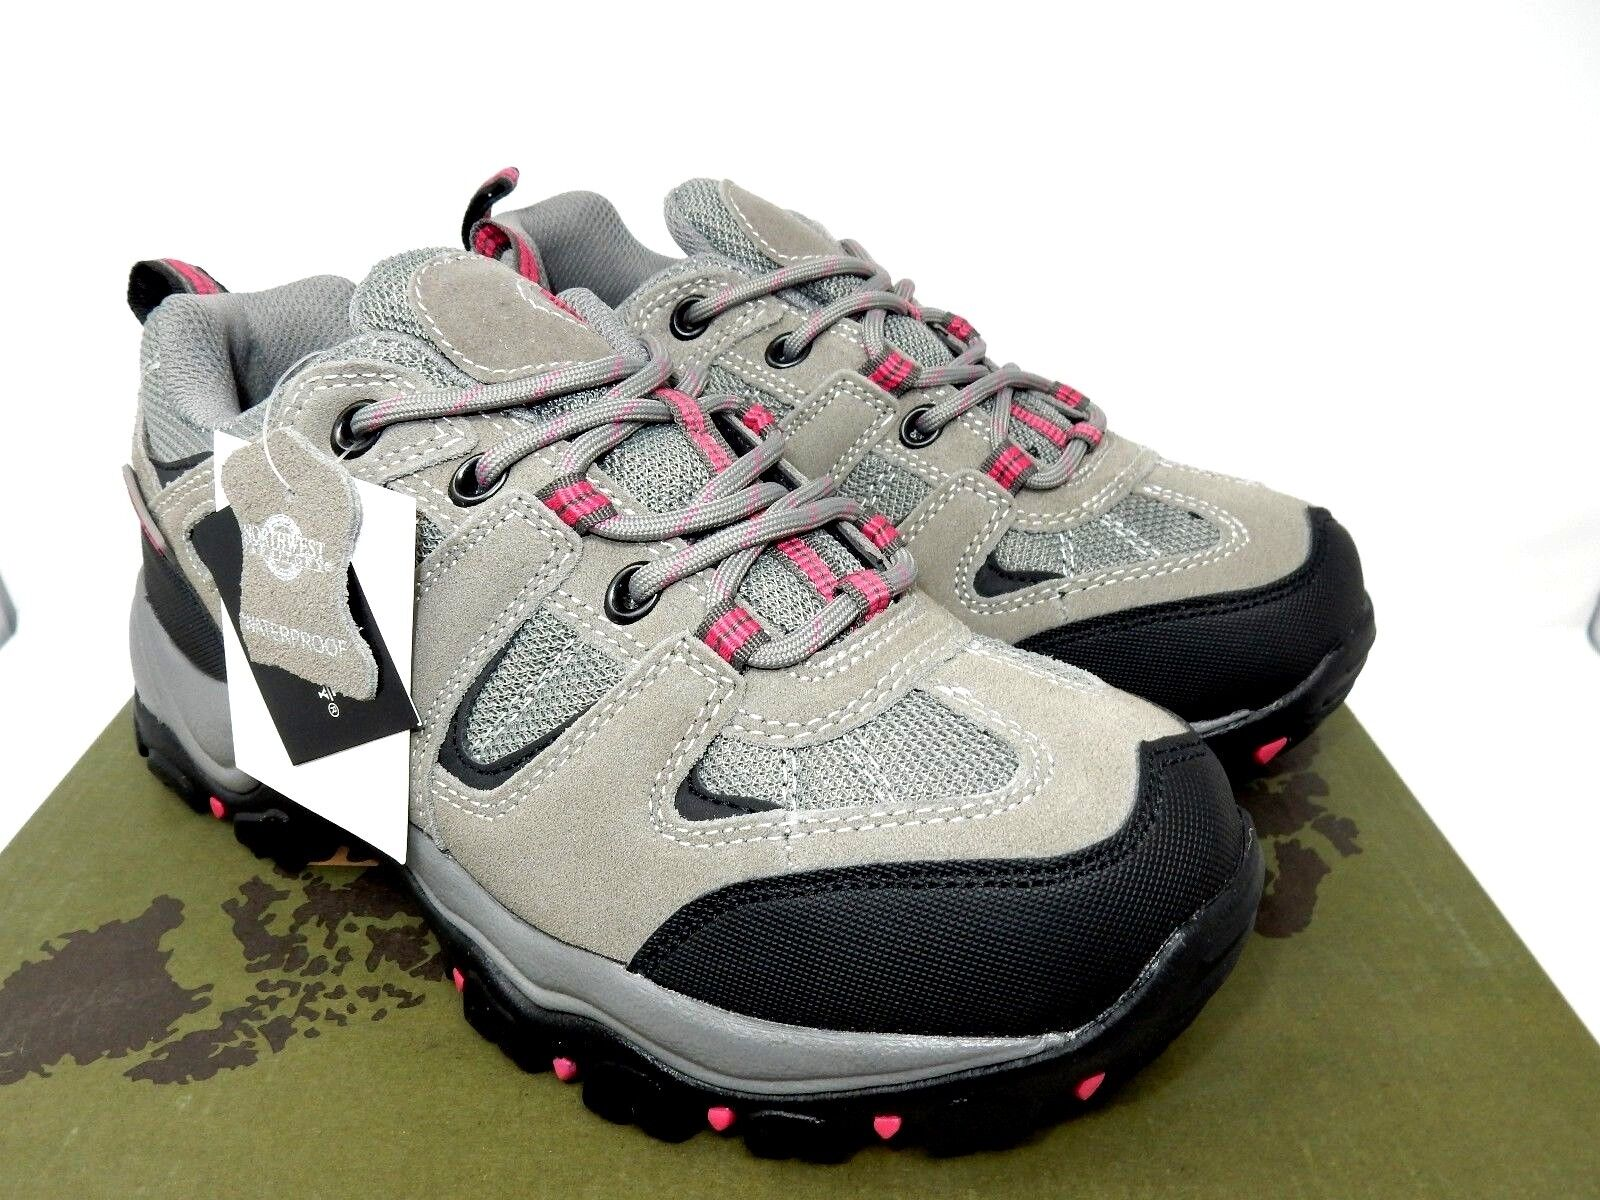 Northwest Territory Women's Waterproof Leather Walking Hiking shoes Trainers